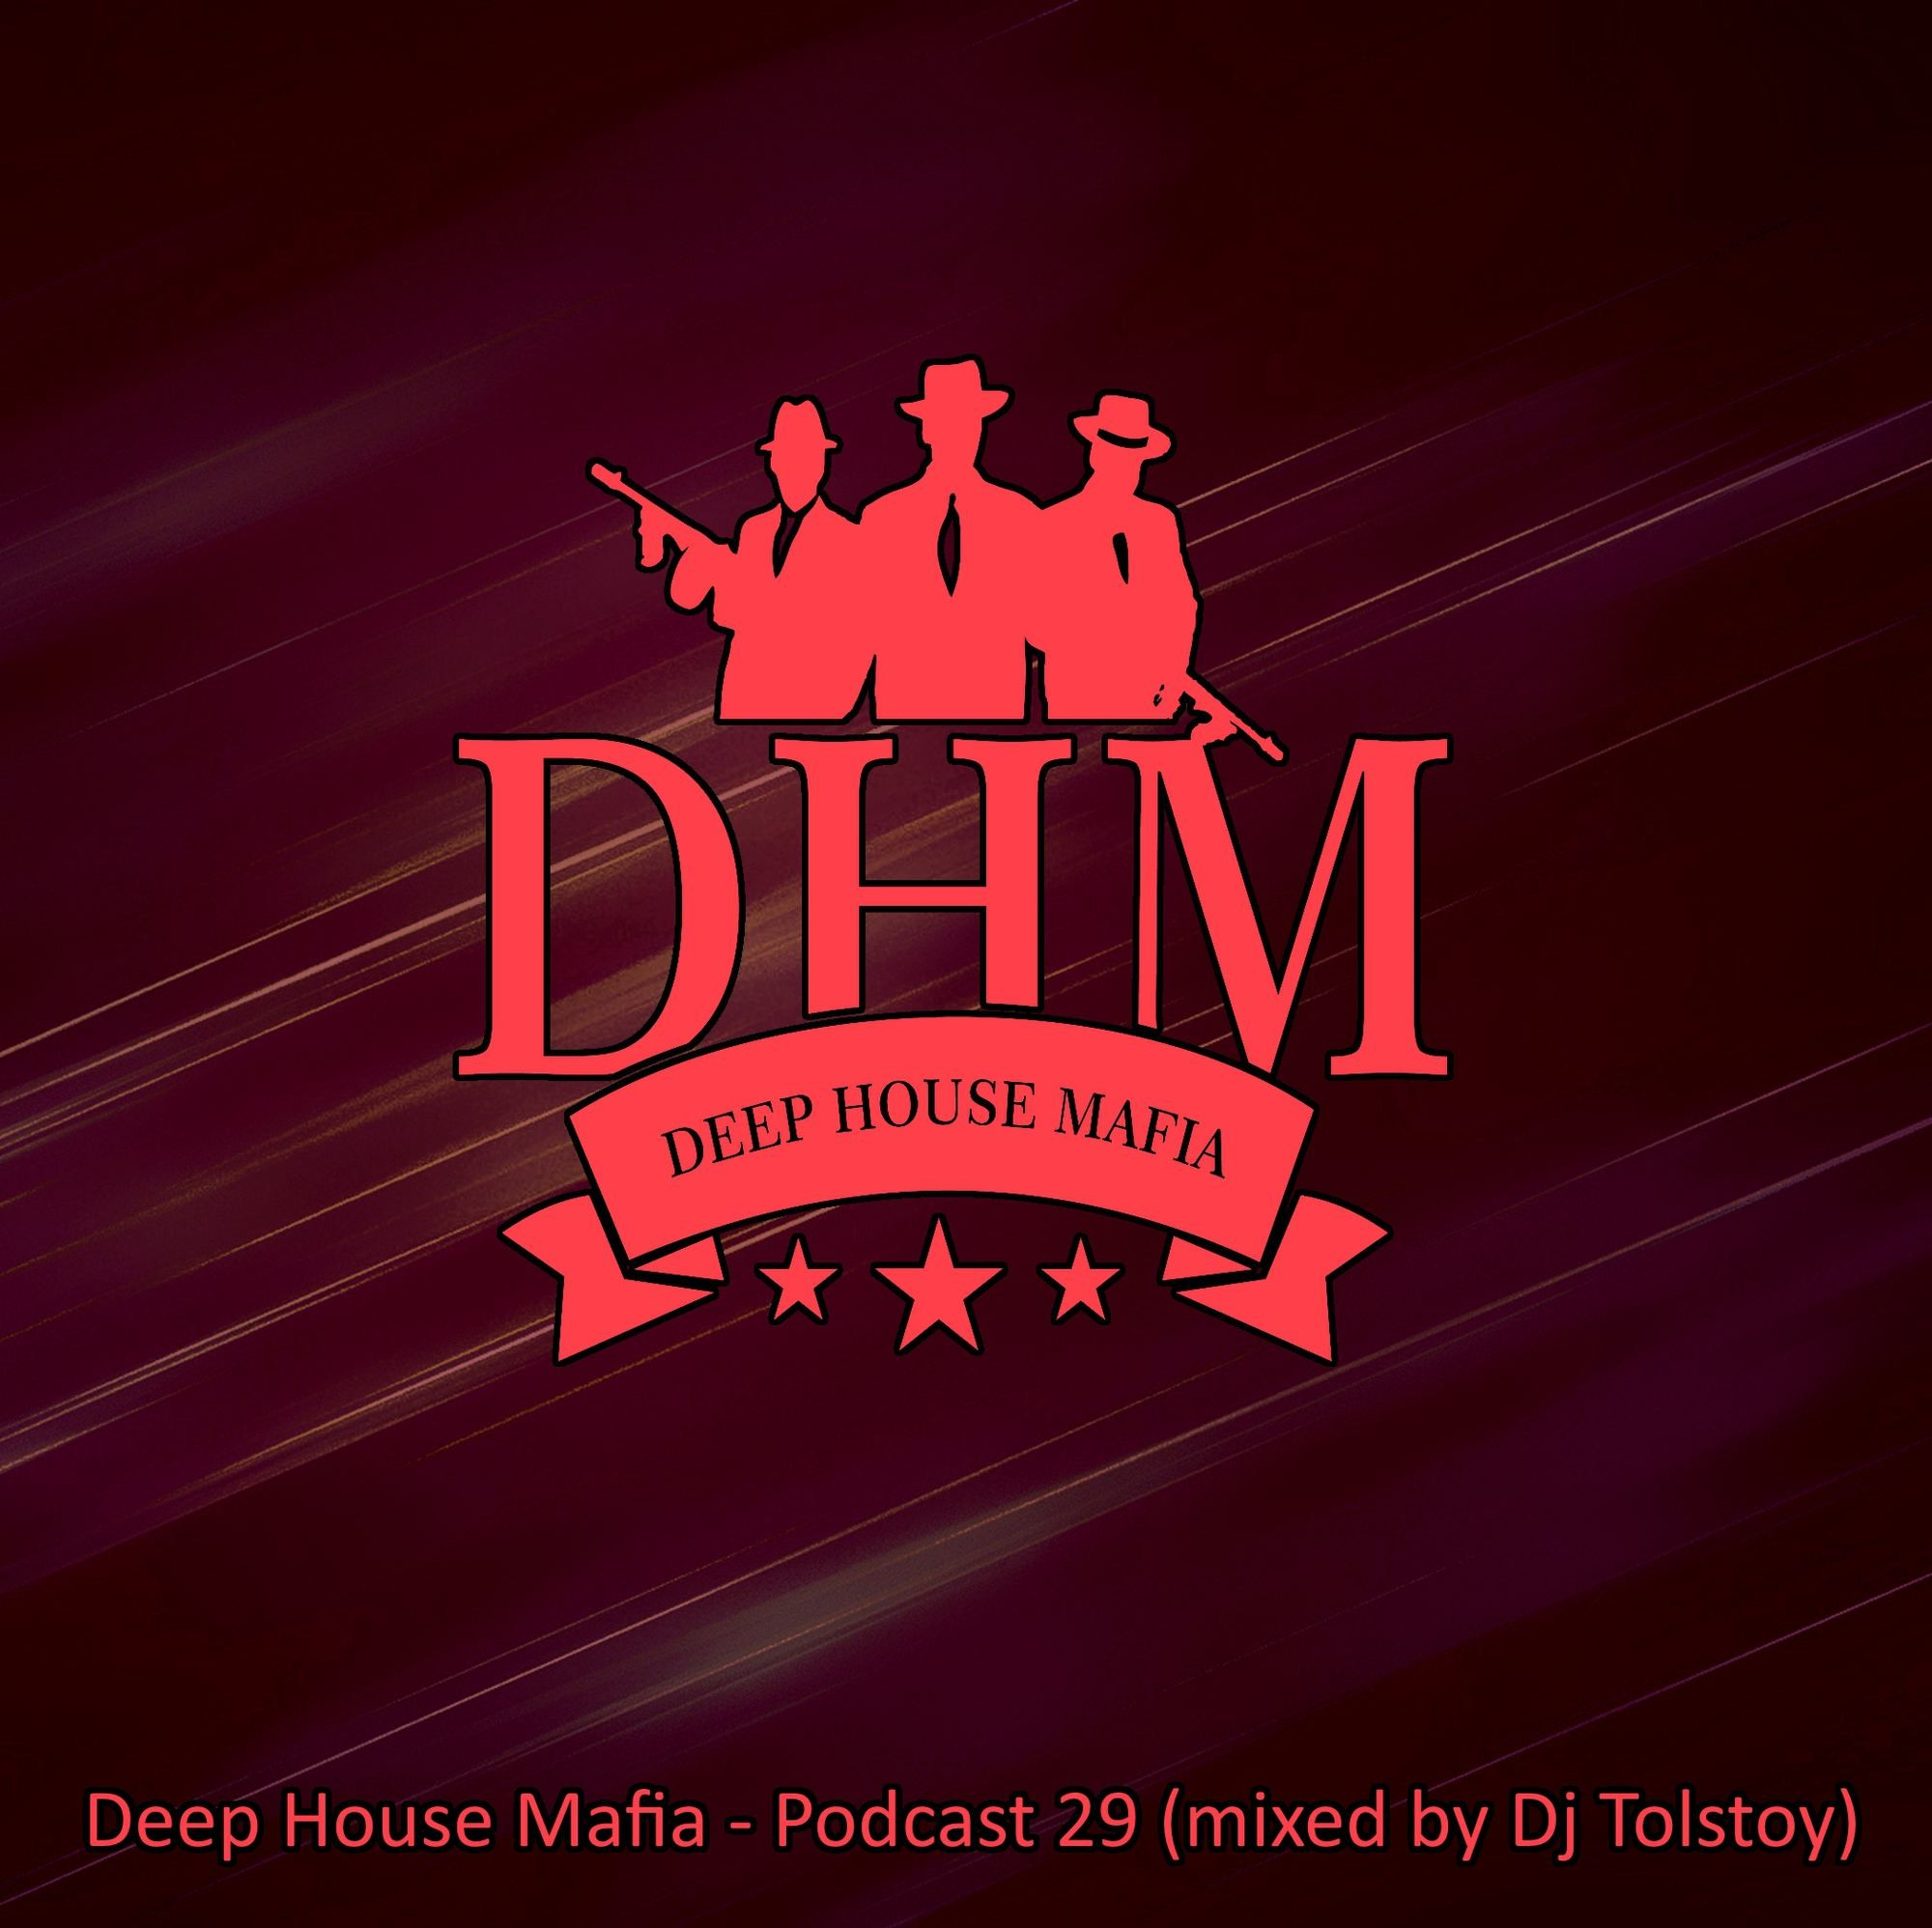 Deep house mafia podcast 29 mixed by dj tolstoy for House music podcast